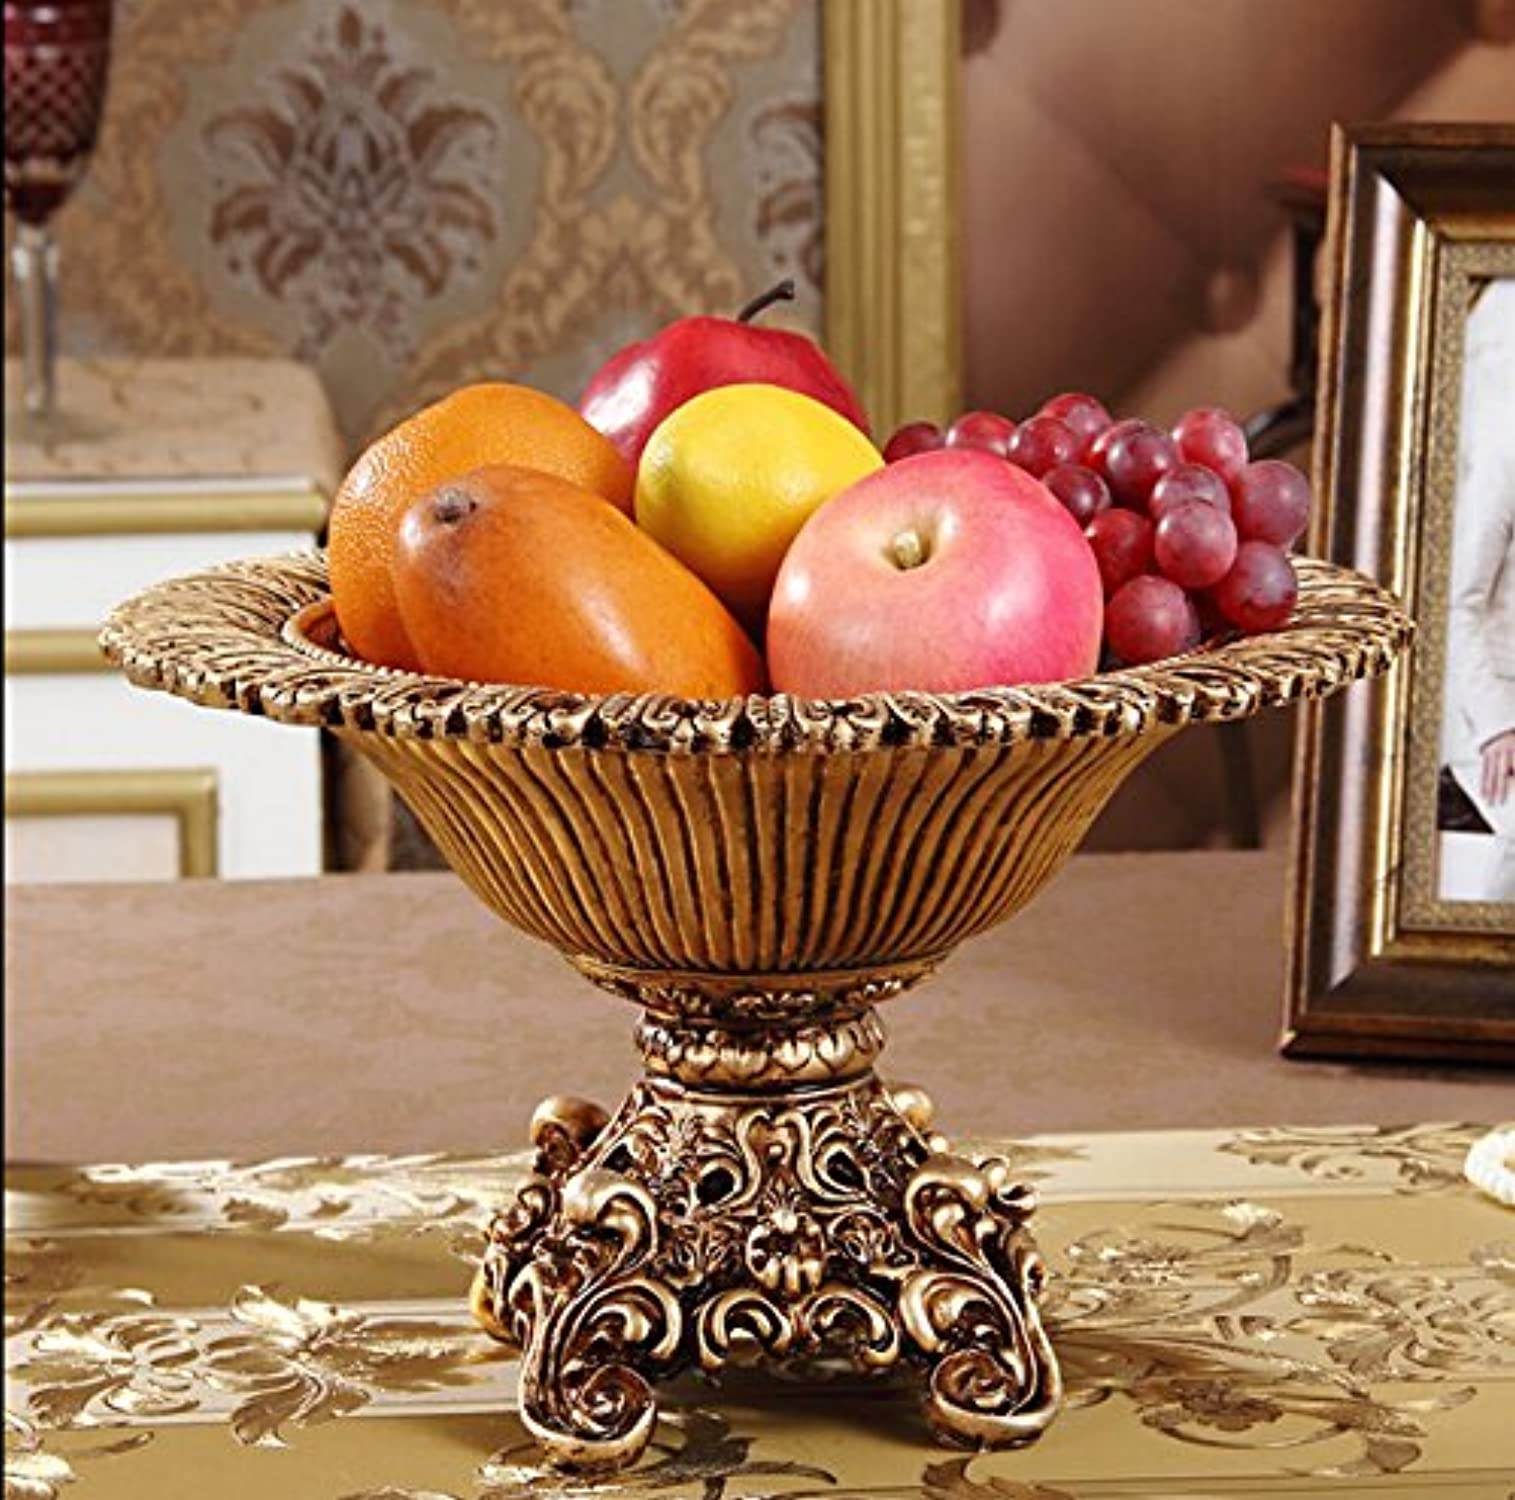 MLGG Fruits Continental Bol Vintage Palace Luxe décoration Salon Table Basse OrneHommests résine compocravater